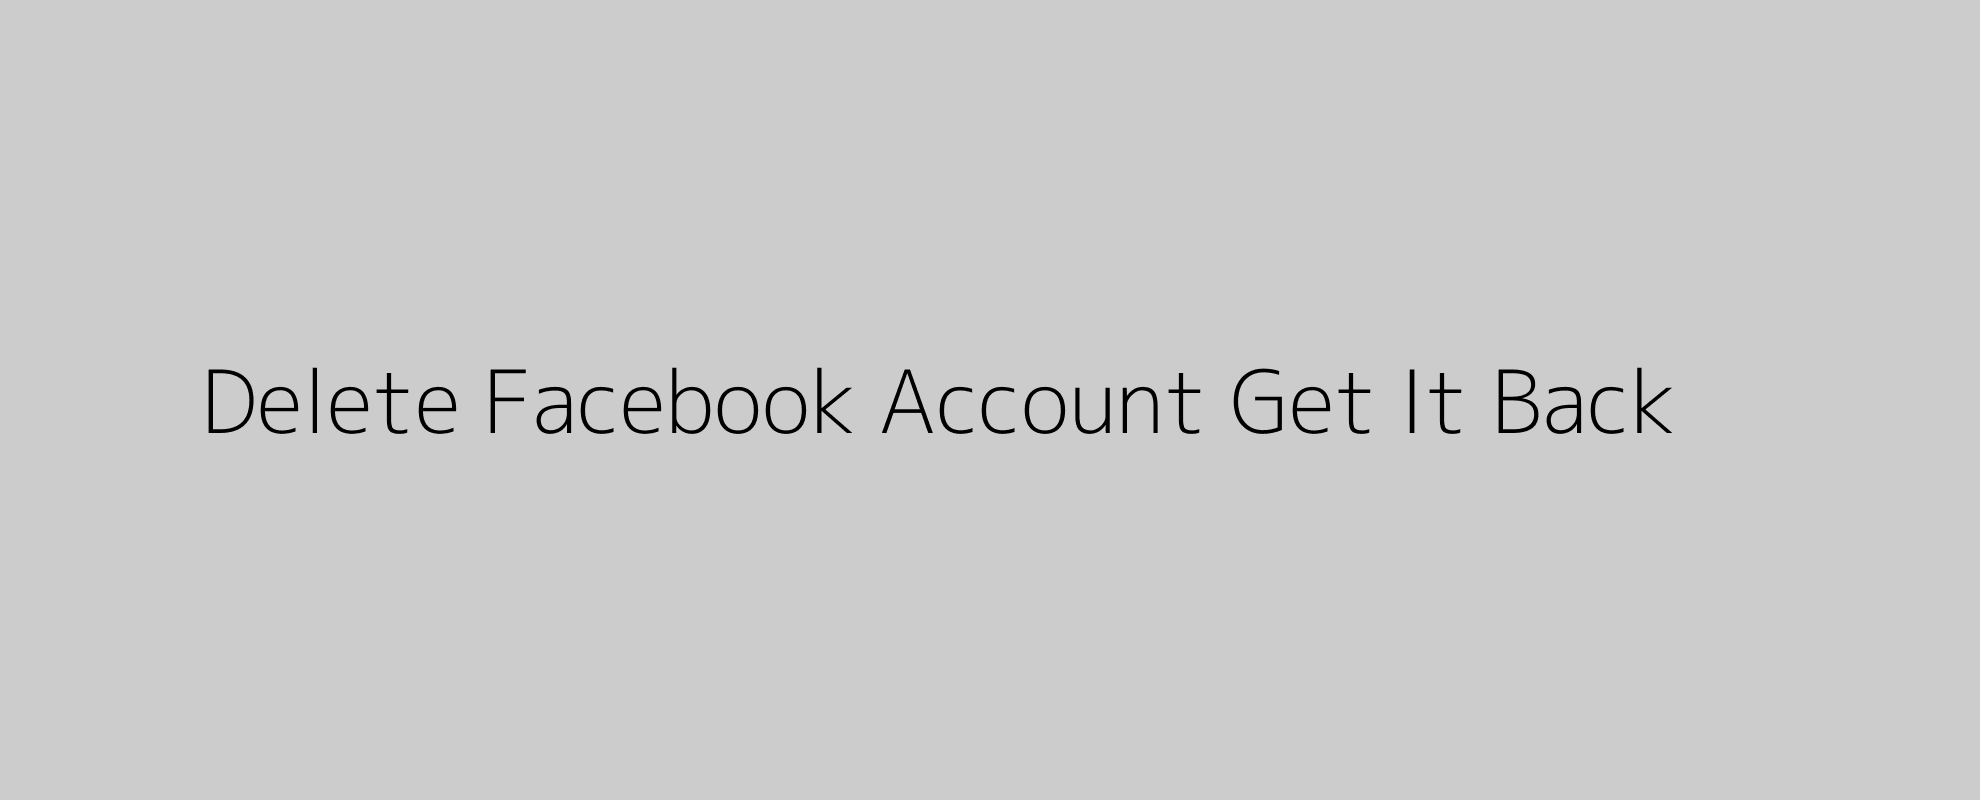 Delete Facebook Account Get It Back